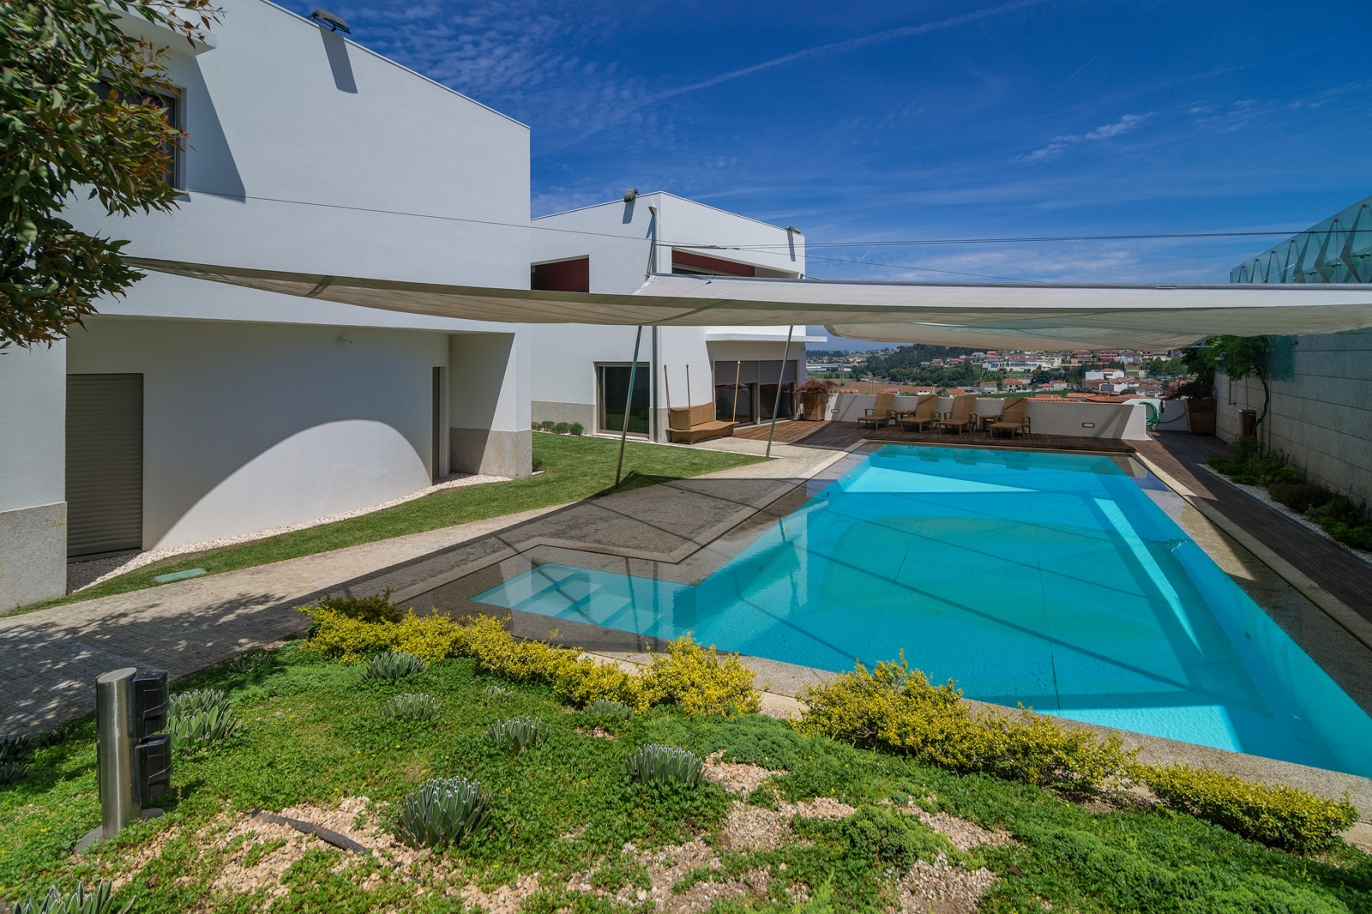 3-bedroom-villa-with-pool-and-garden-for-sale-at-trofa-porto-portugal